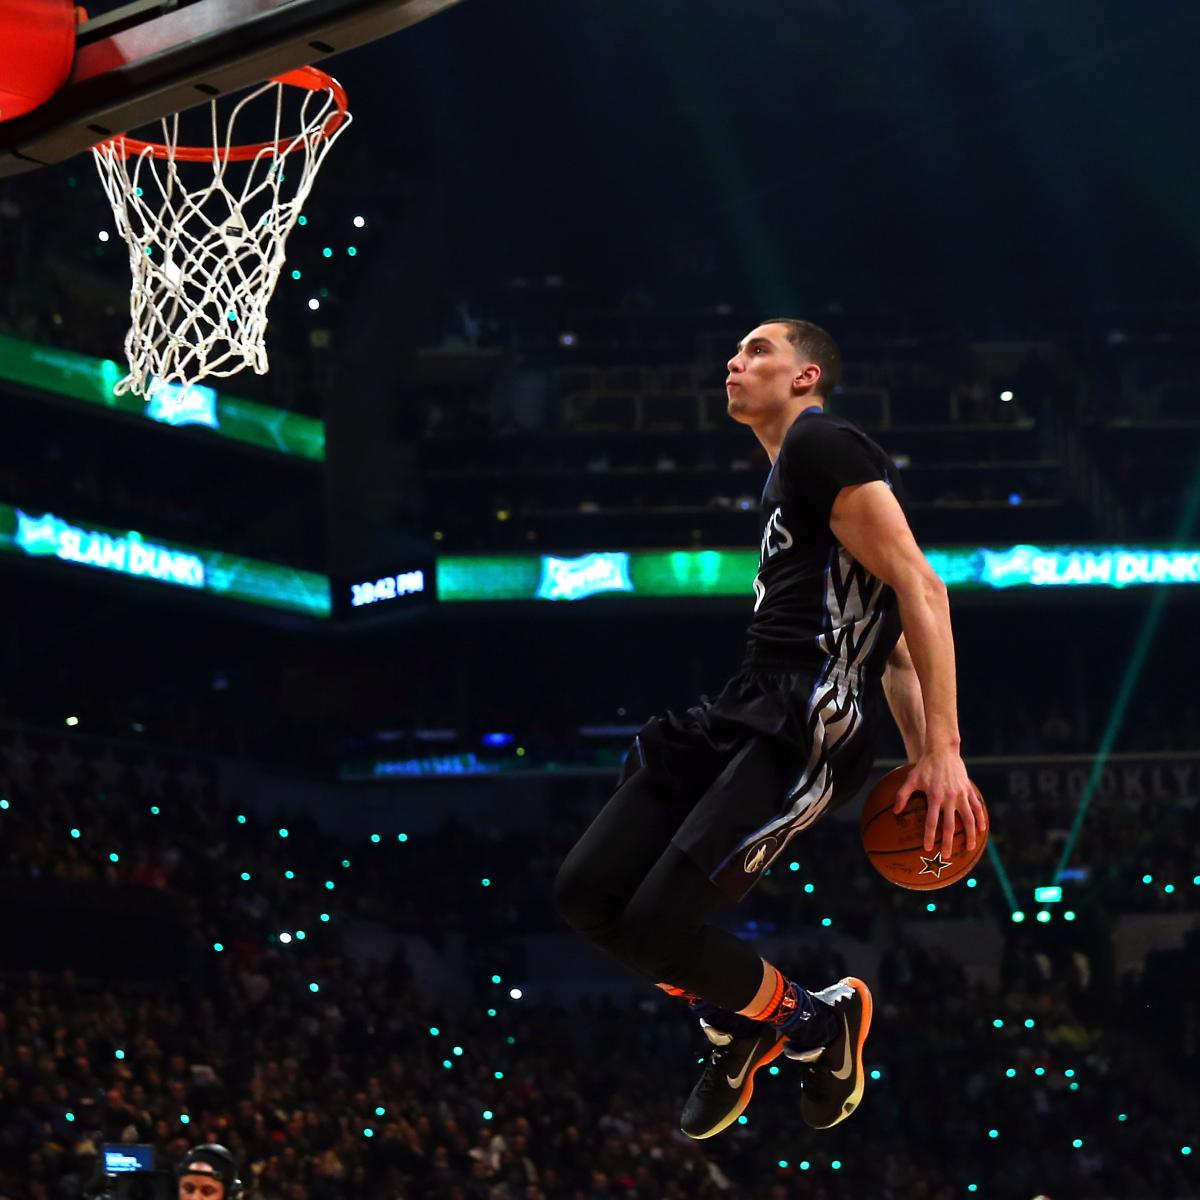 NBA Slam Dunk Contest 2015: Highlights And Analysis Of All